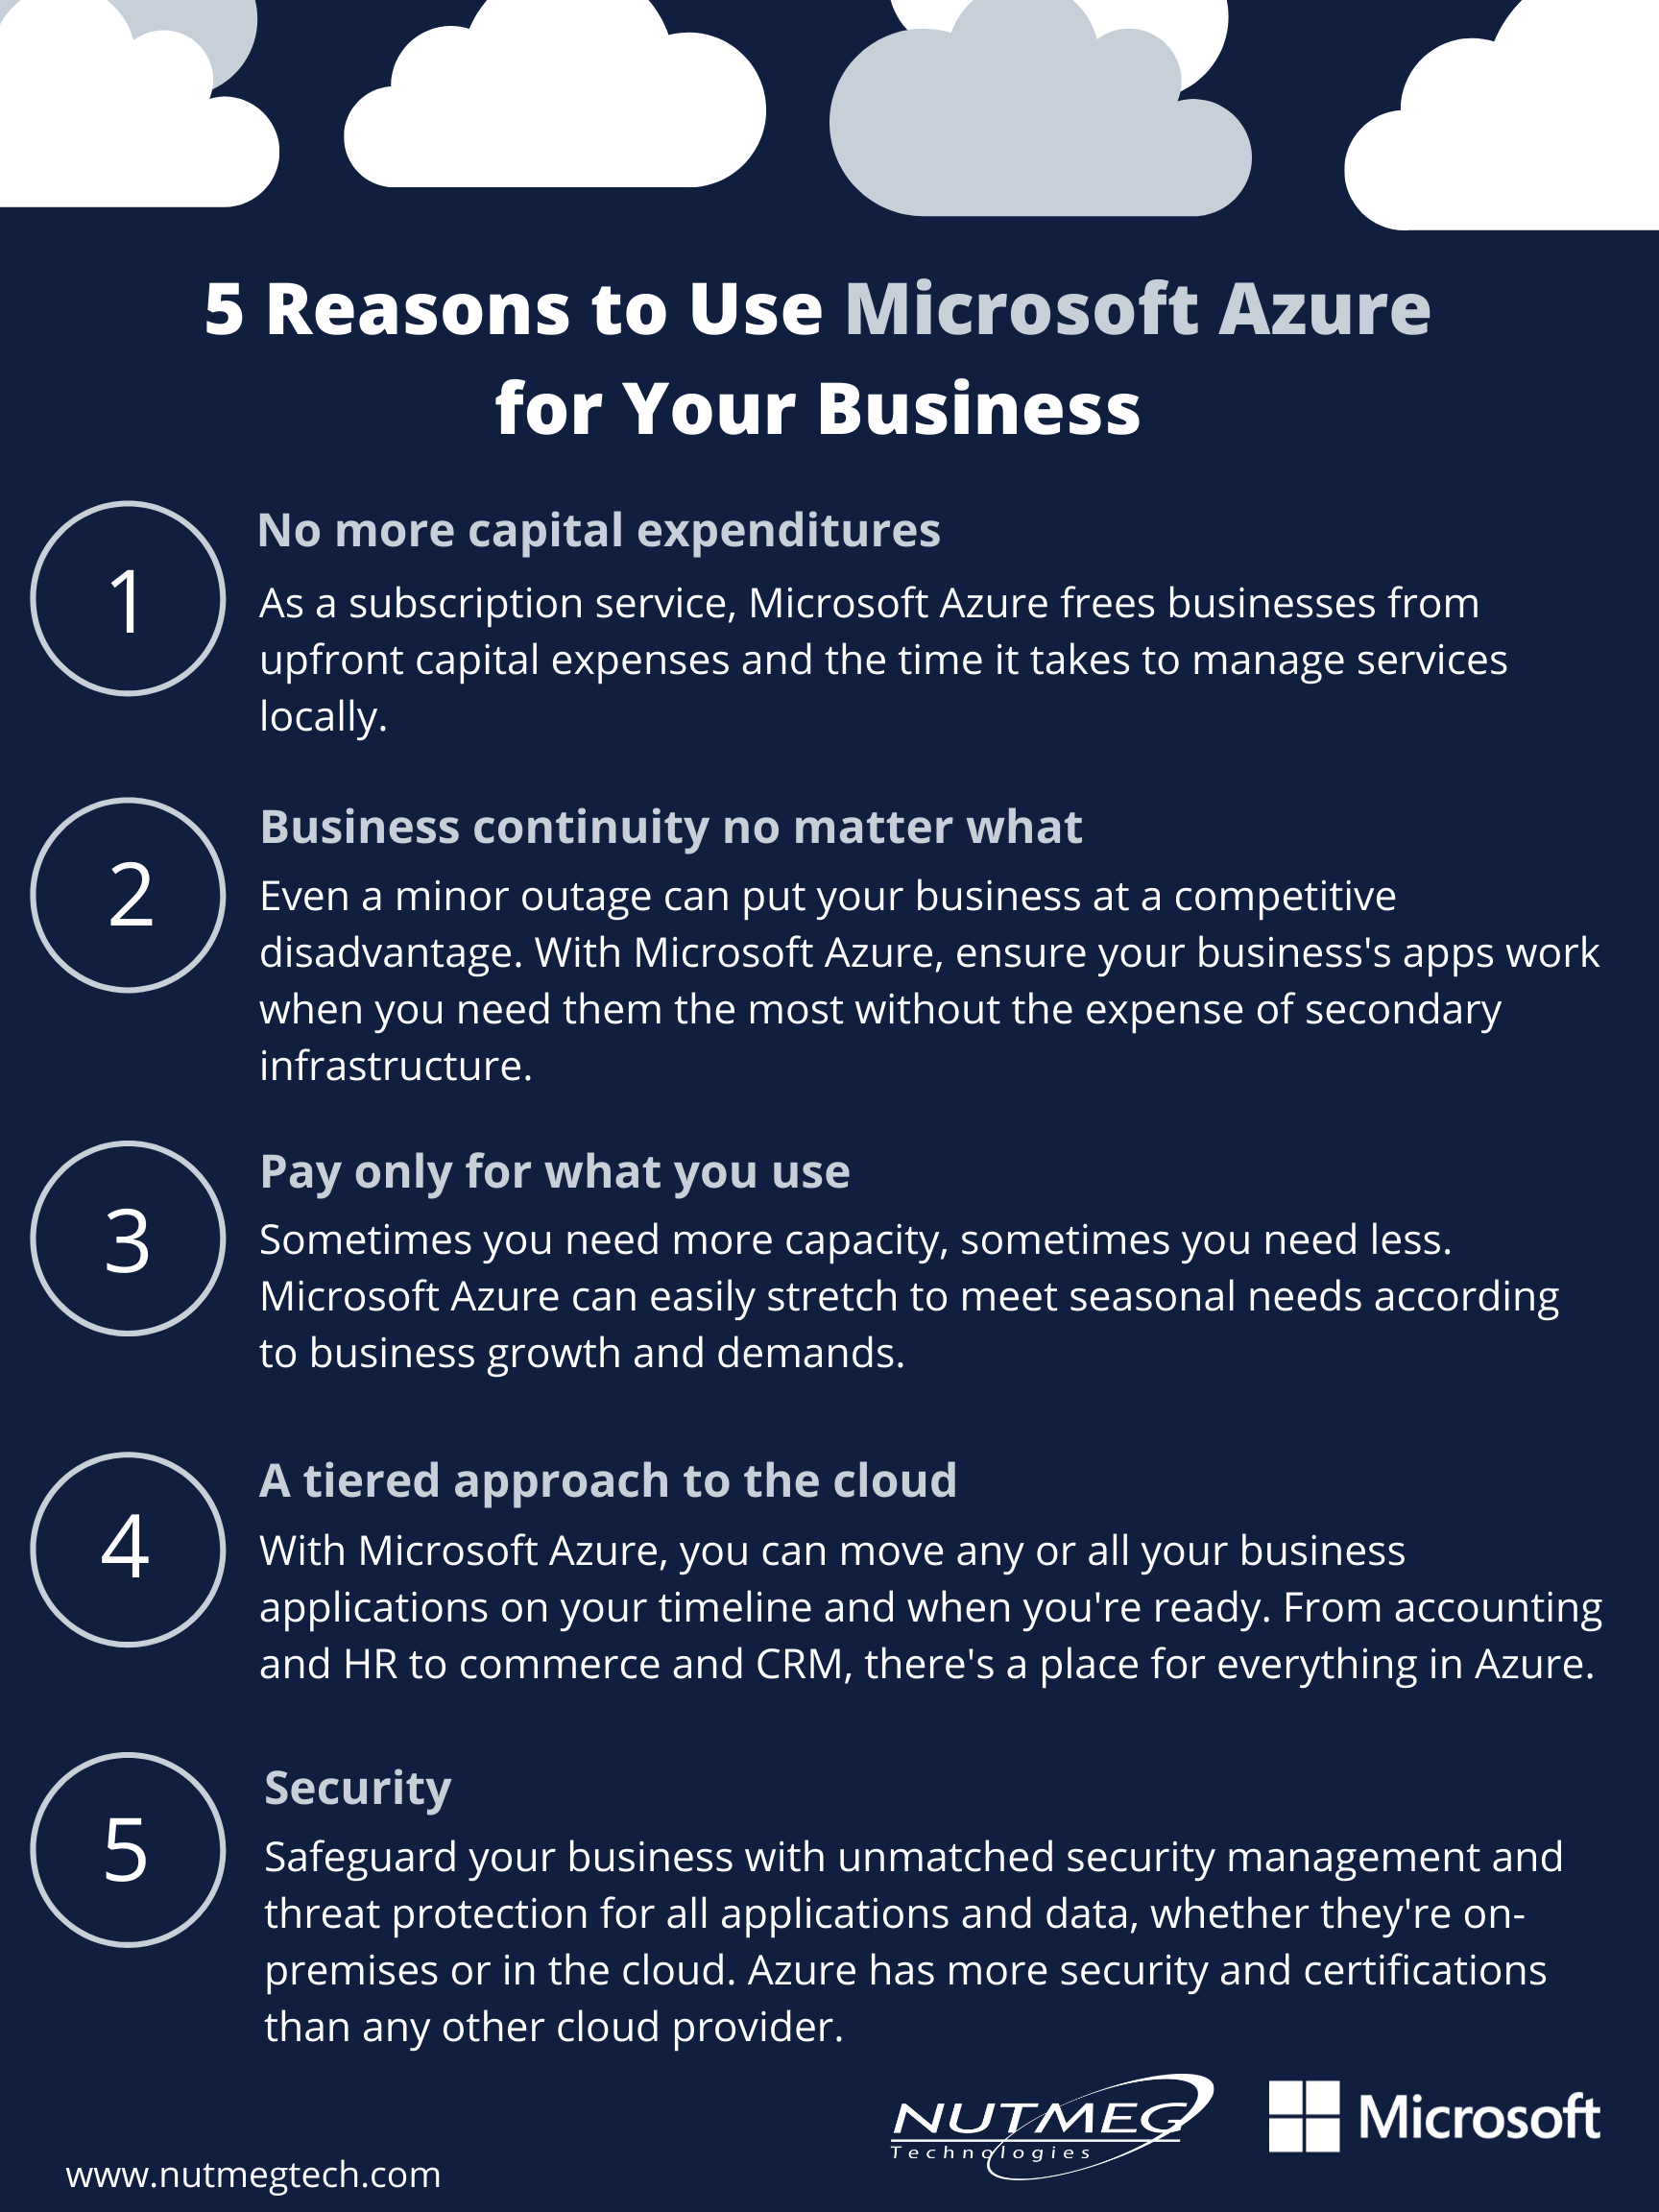 5 reasons to use Microsoft Azure for your business